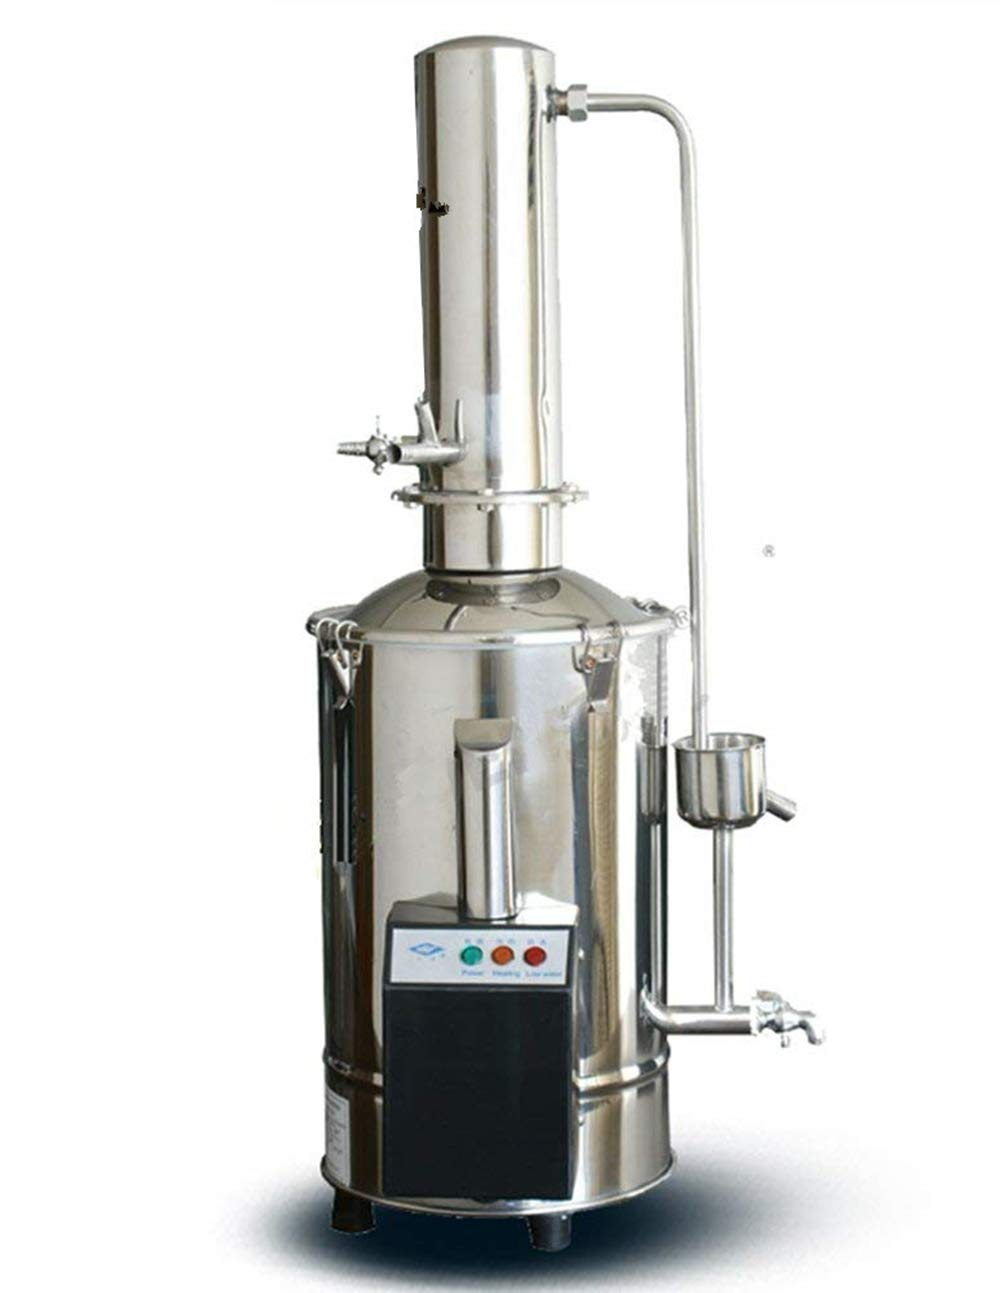 CGOLDENWALL Auto-Control Electric Water Distiller Water Distilling Machine Distilled Water 5L/h(220V) by CGOLDENWALL